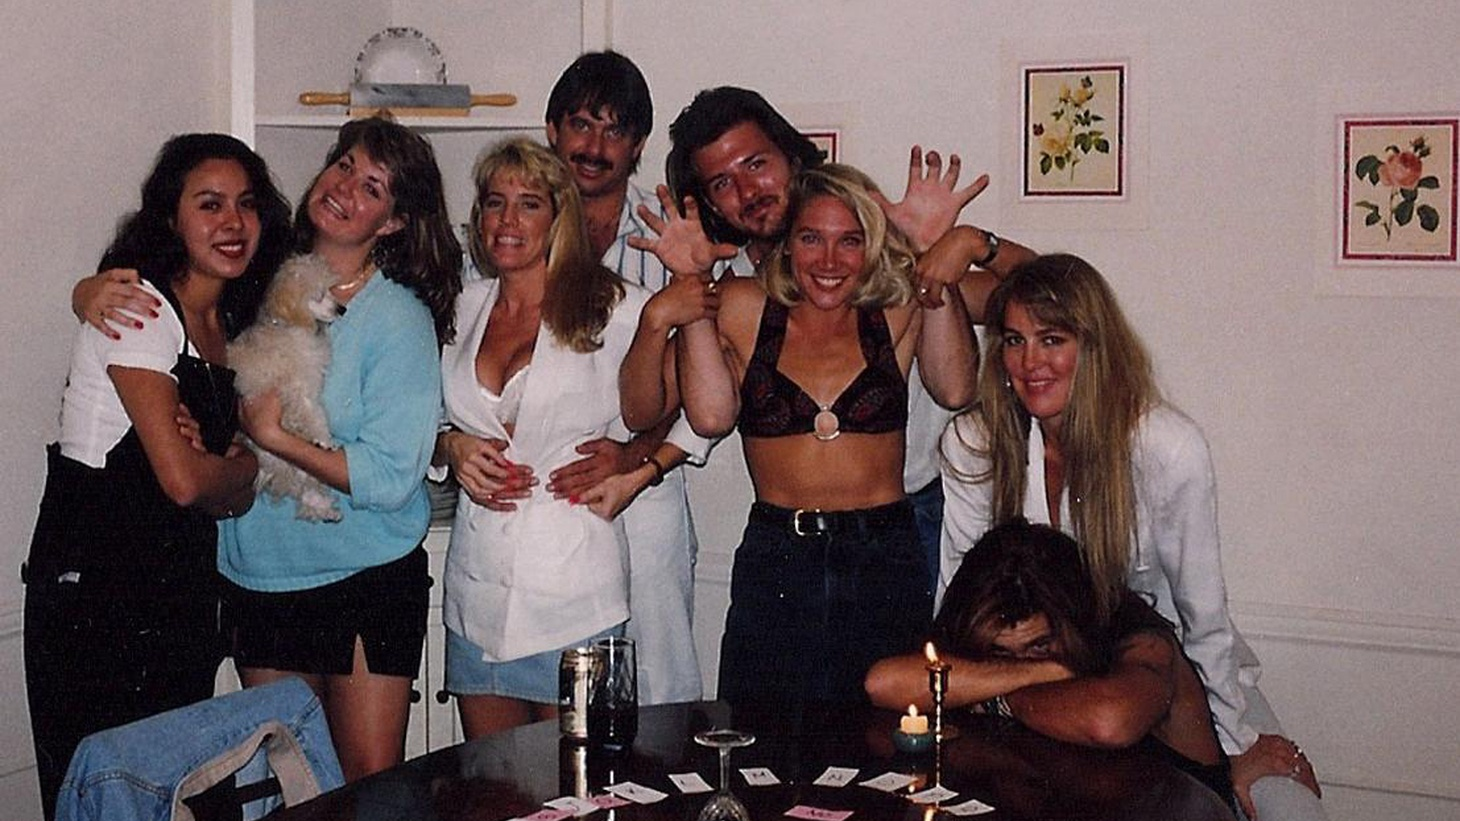 On a summer night in the early 1990's, a small group of friends gather for a dinner party in Los Angeles. Just for fun, someone suggests having a little séance....